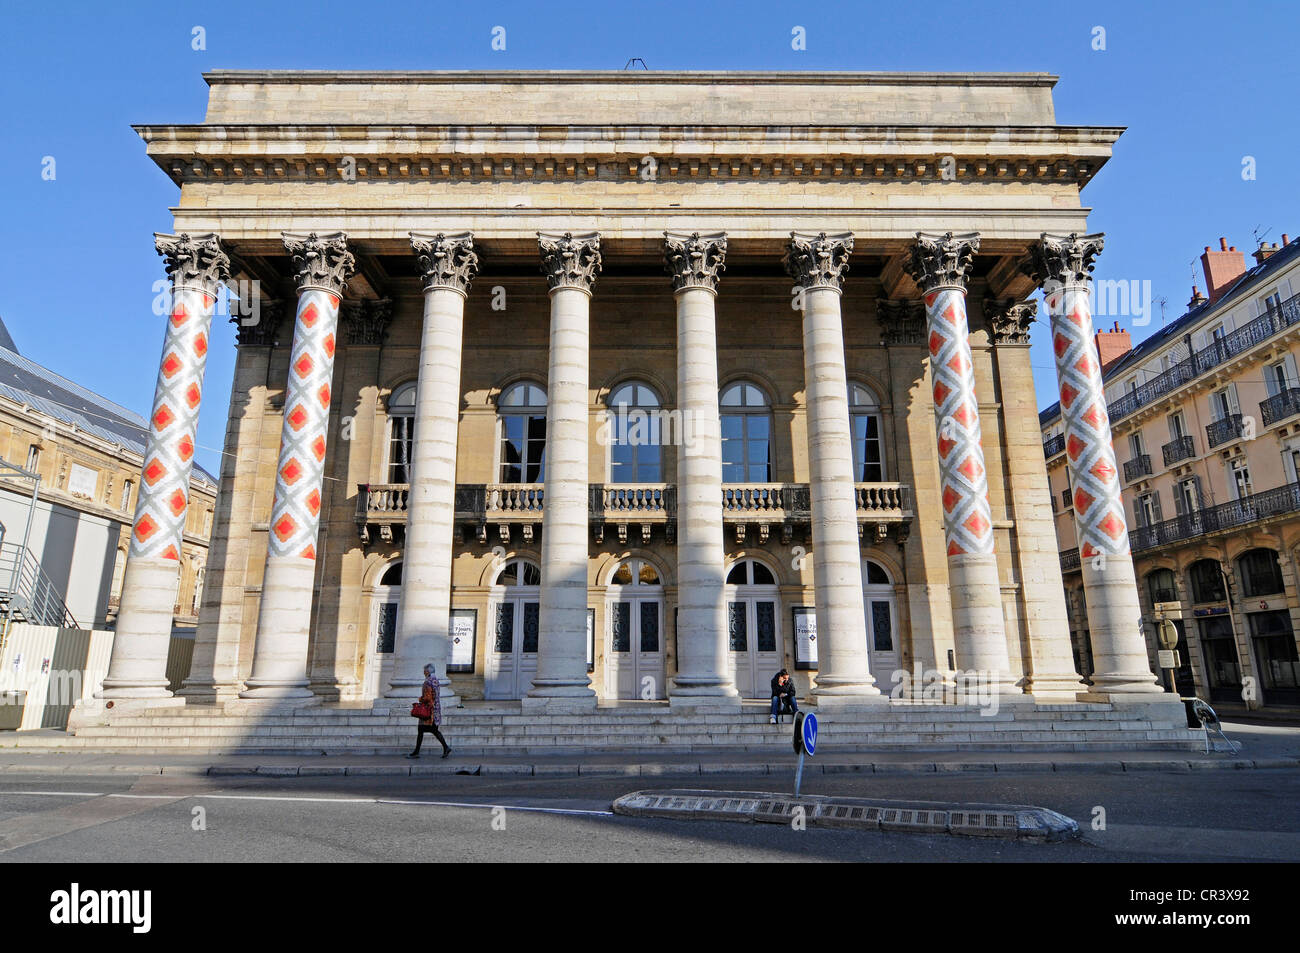 Theatre, Dijon, Cote-d'Or, Bourgogne, Burgundy, France, Europe, PublicGround - Stock Image